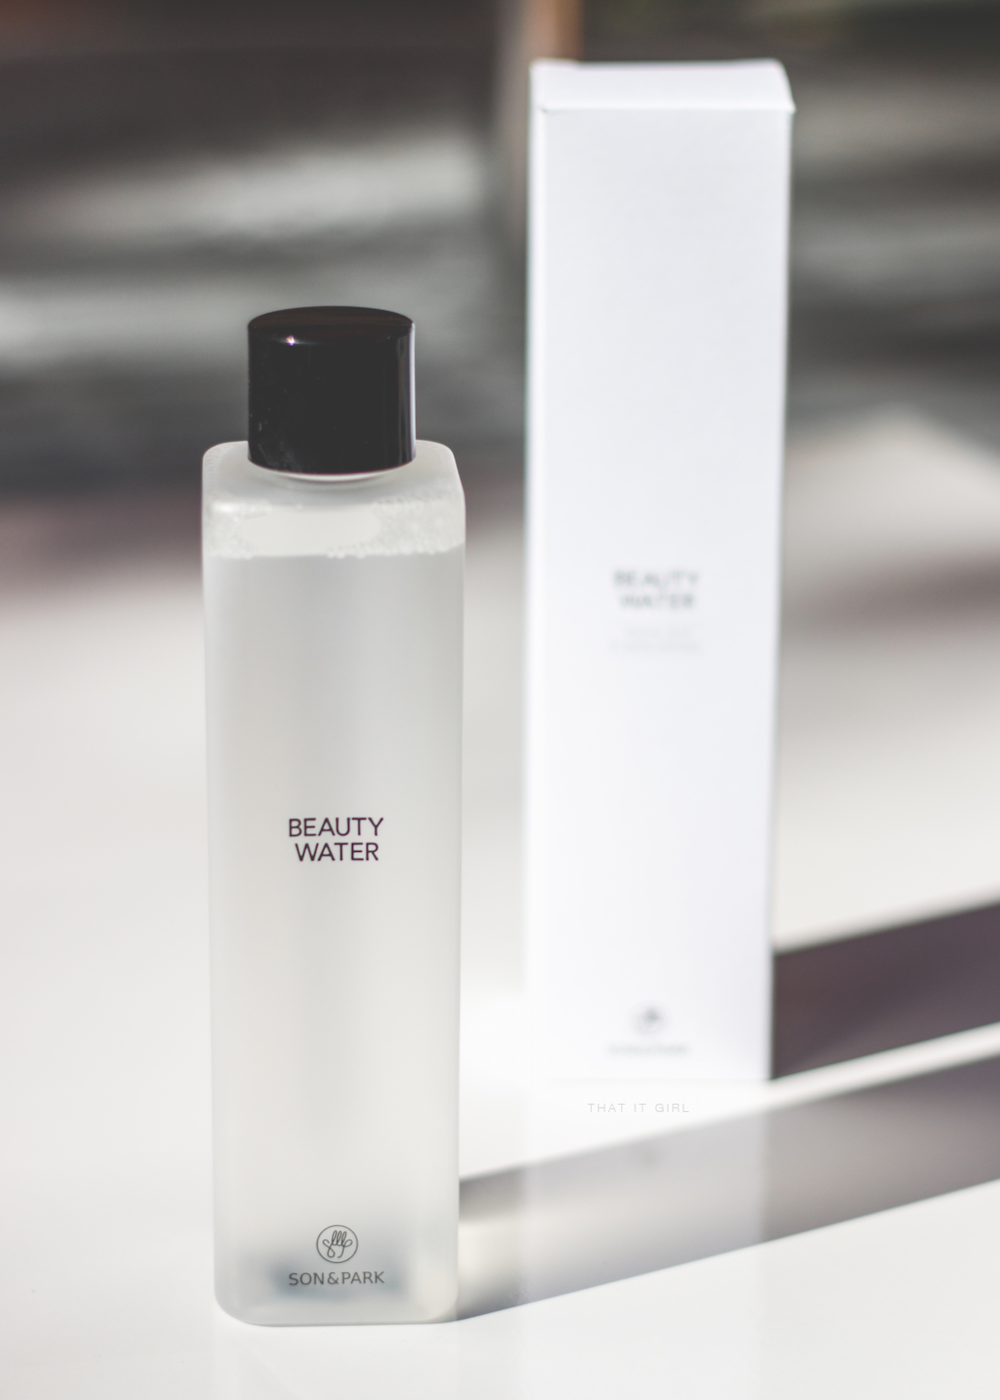 The current toning water i use for the 7 skin method: Son & park's beauty water                                                                       . image from that it girl